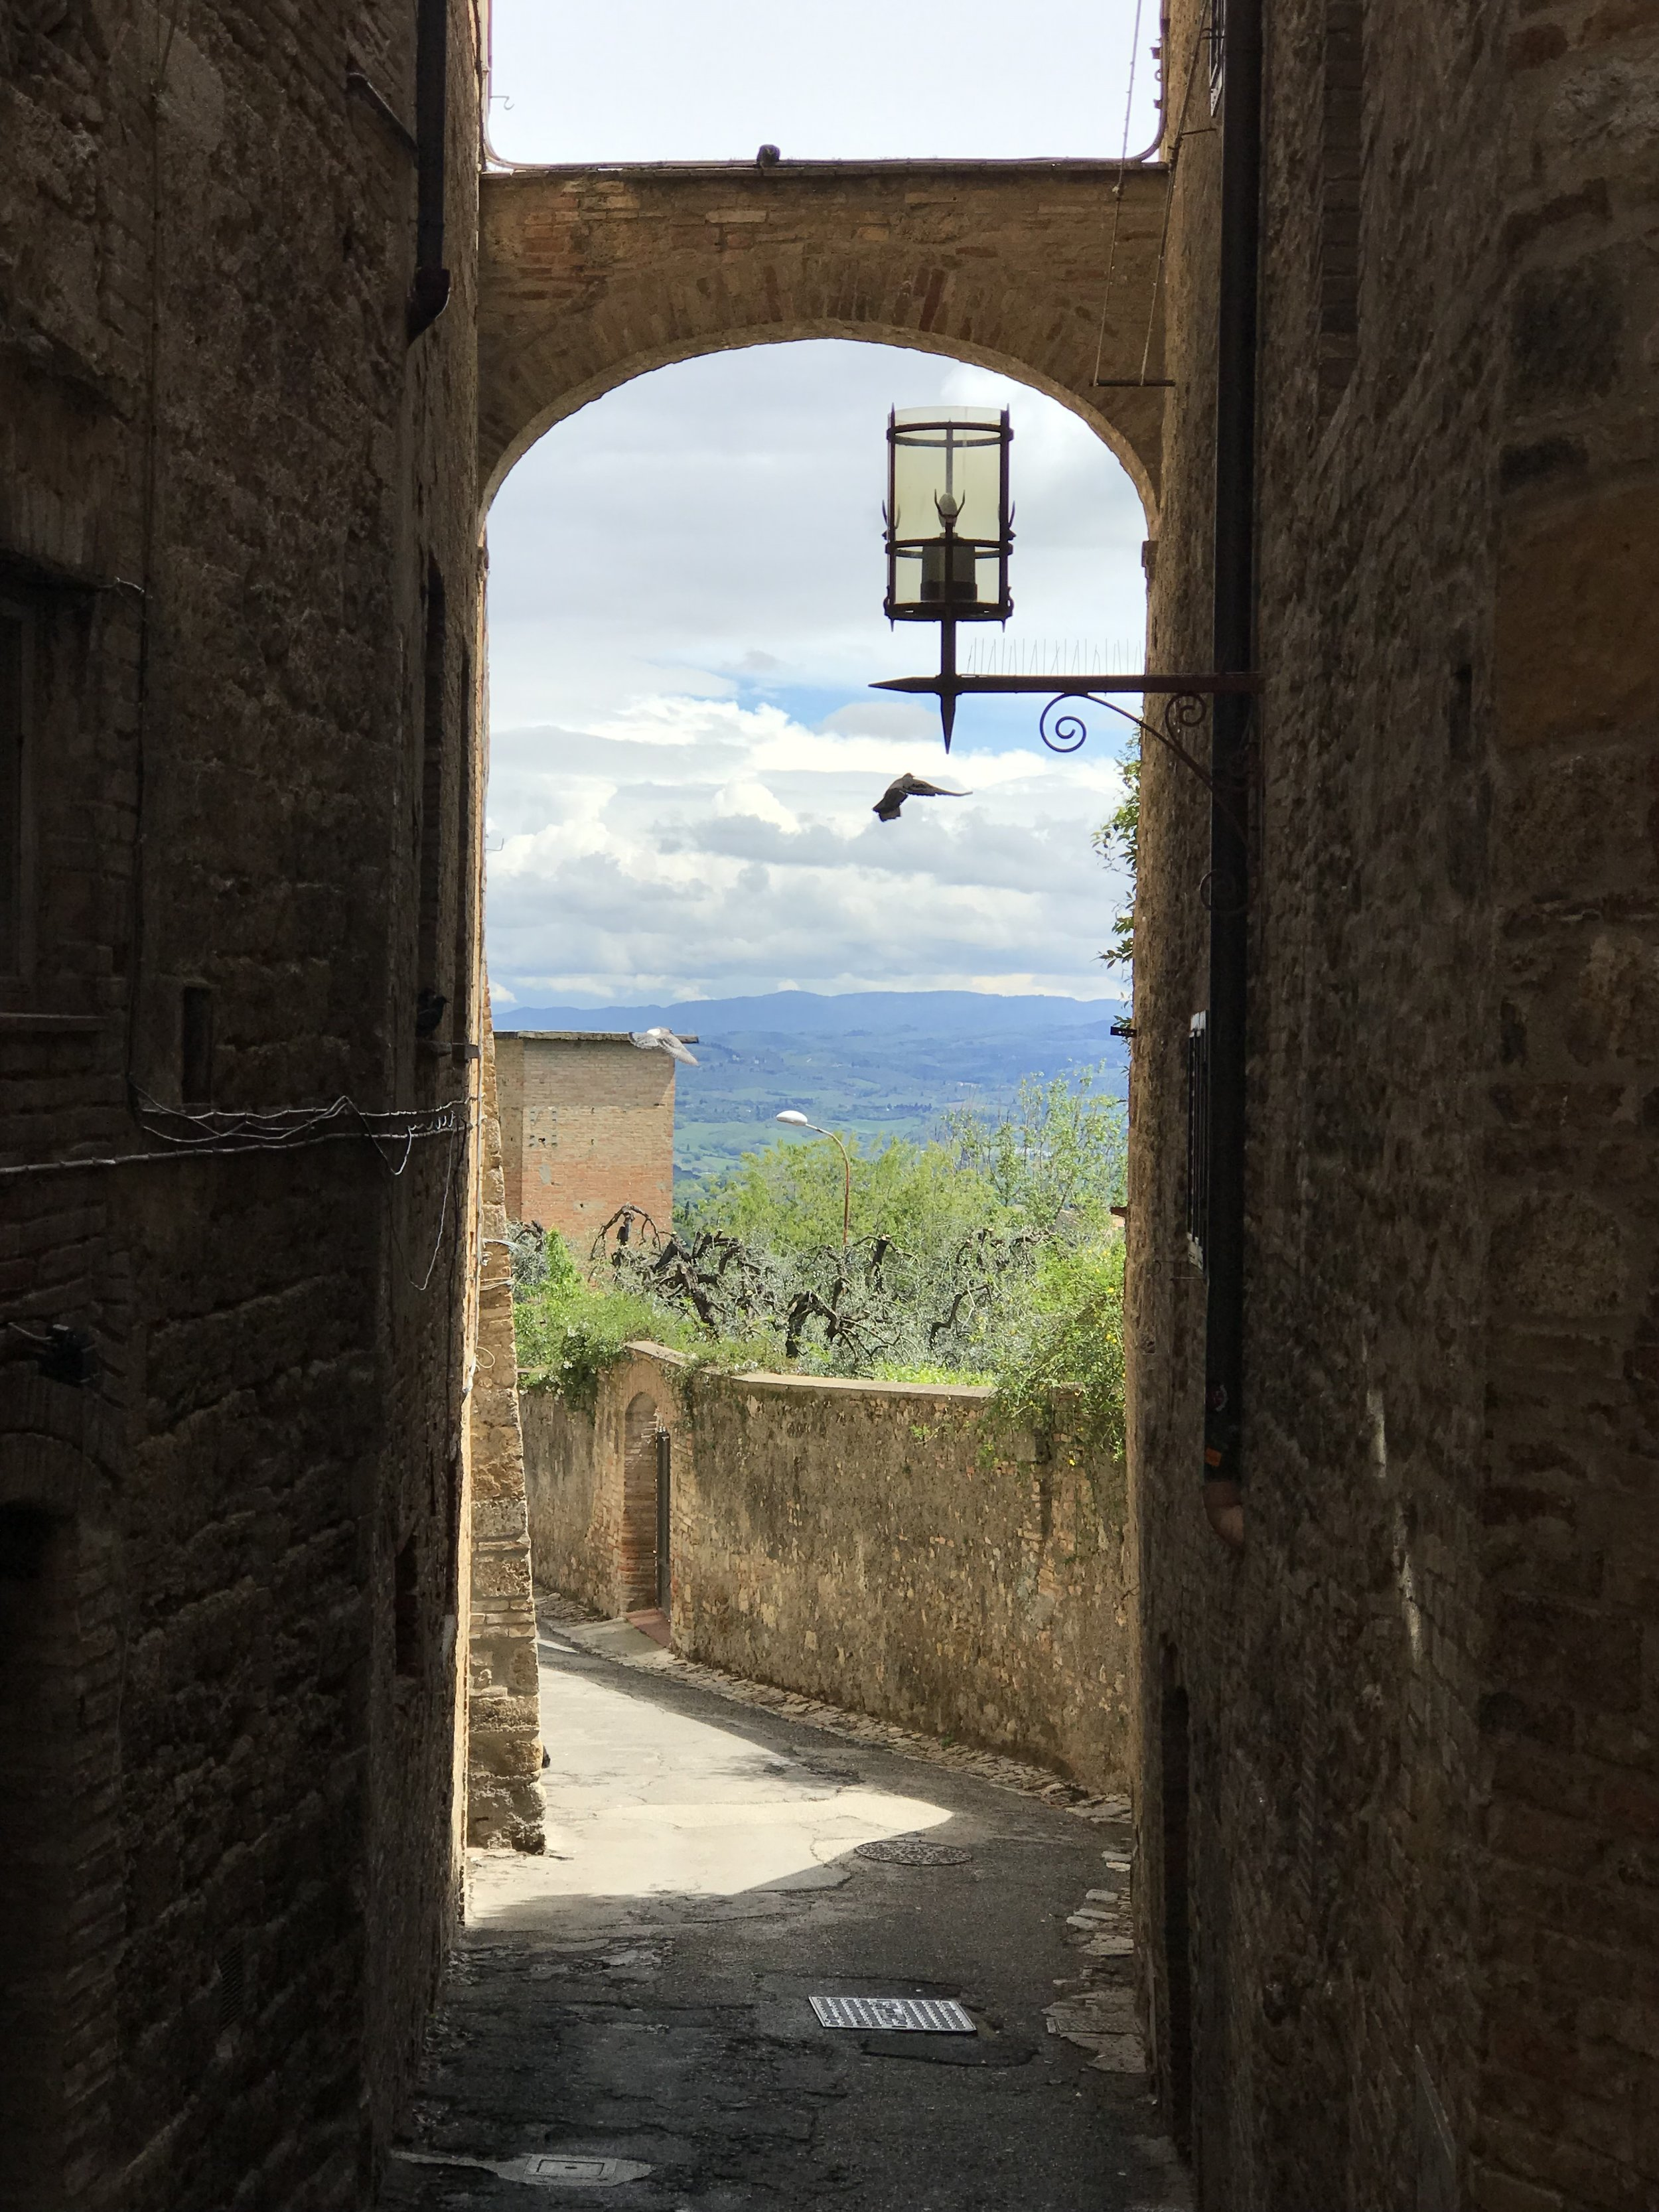 Kathleen Barry and I found a sweet little restaurant down this narrow street in San Gimignano.